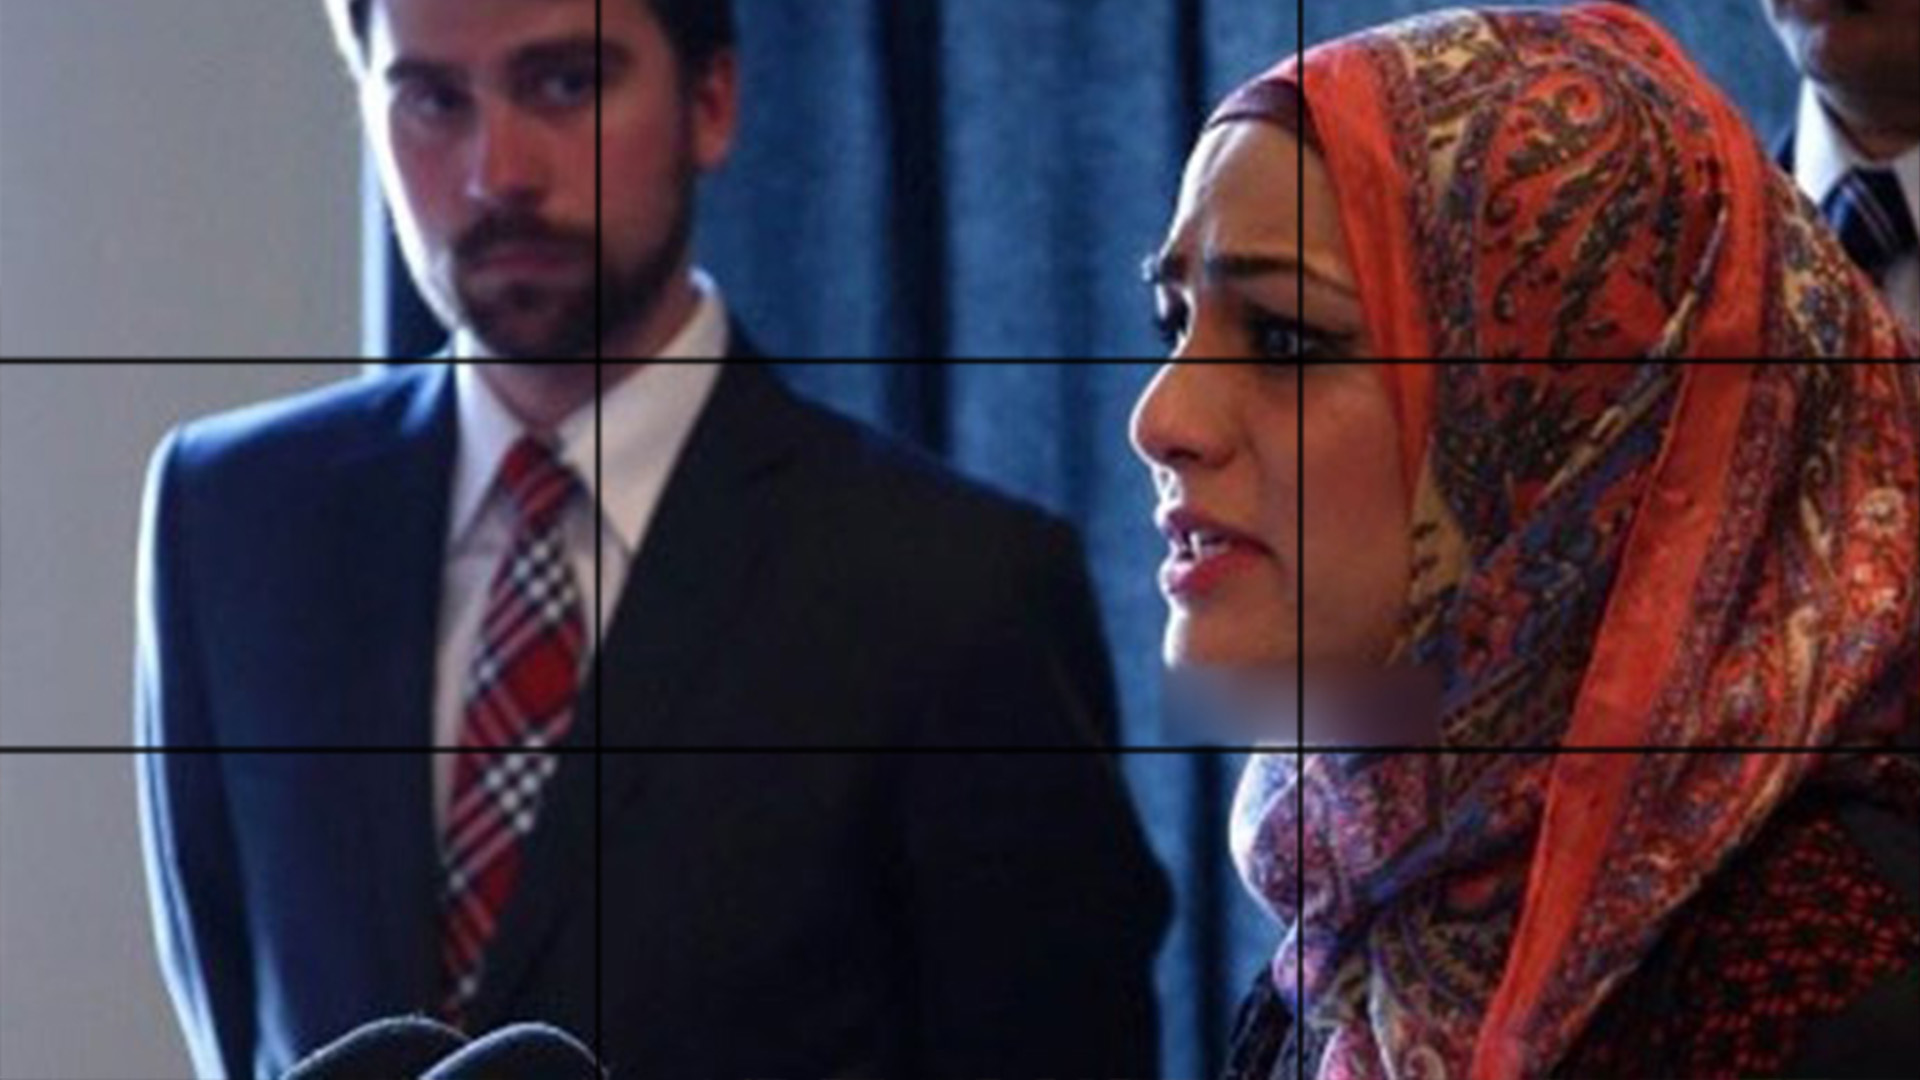 Photo of United Airlines apologizes to US Muslim woman over discrimination